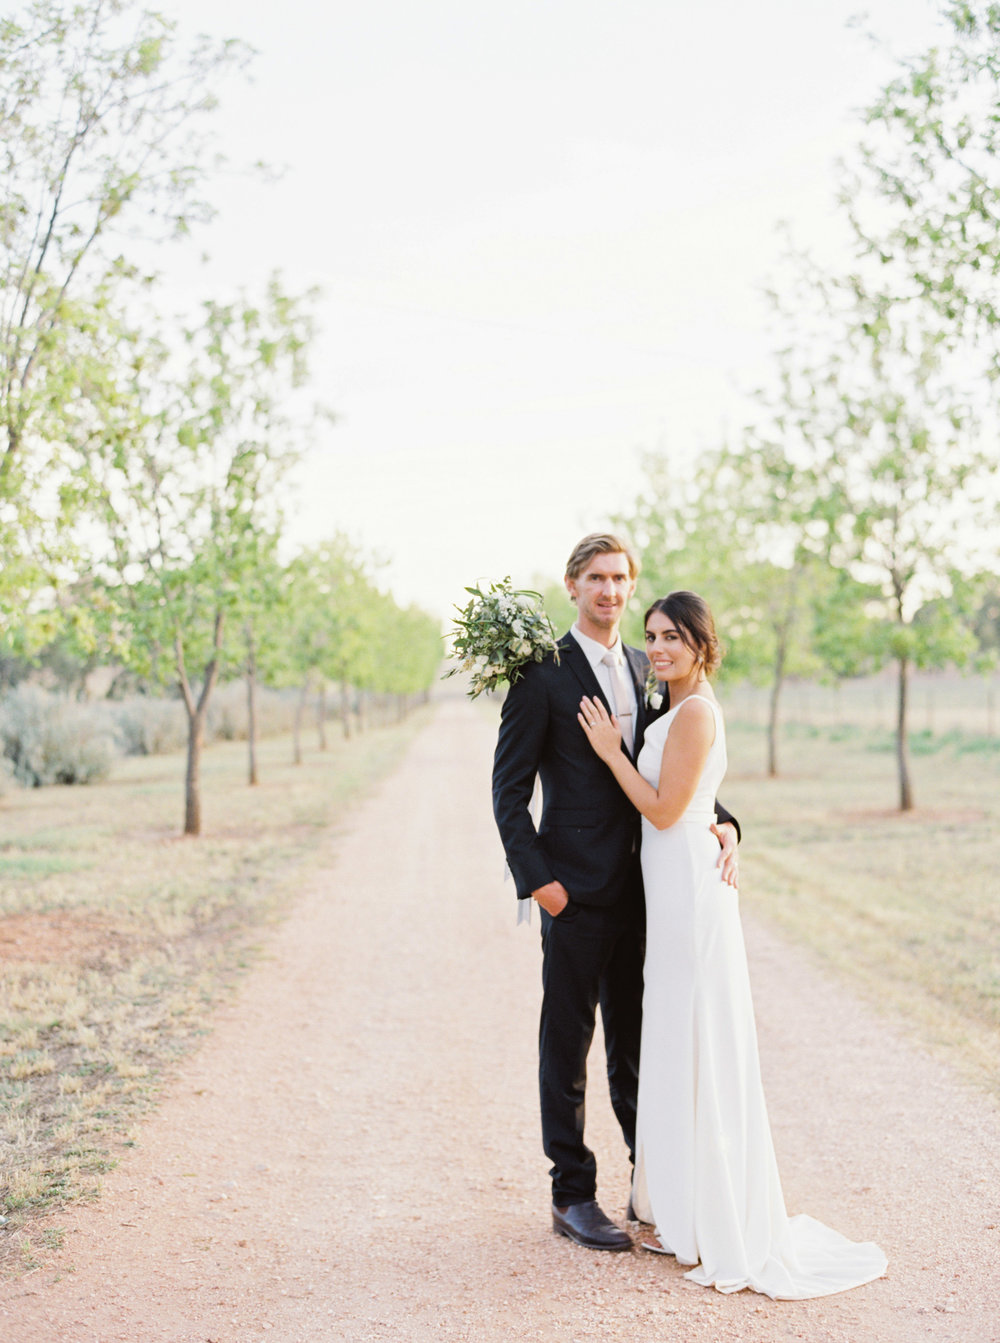 00059- Olive Tree Mediterranean Wedding in Mudgee NSW Australia Fine Art Film Wedding Lifestyle Photographer Sheri McMahon_.jpg